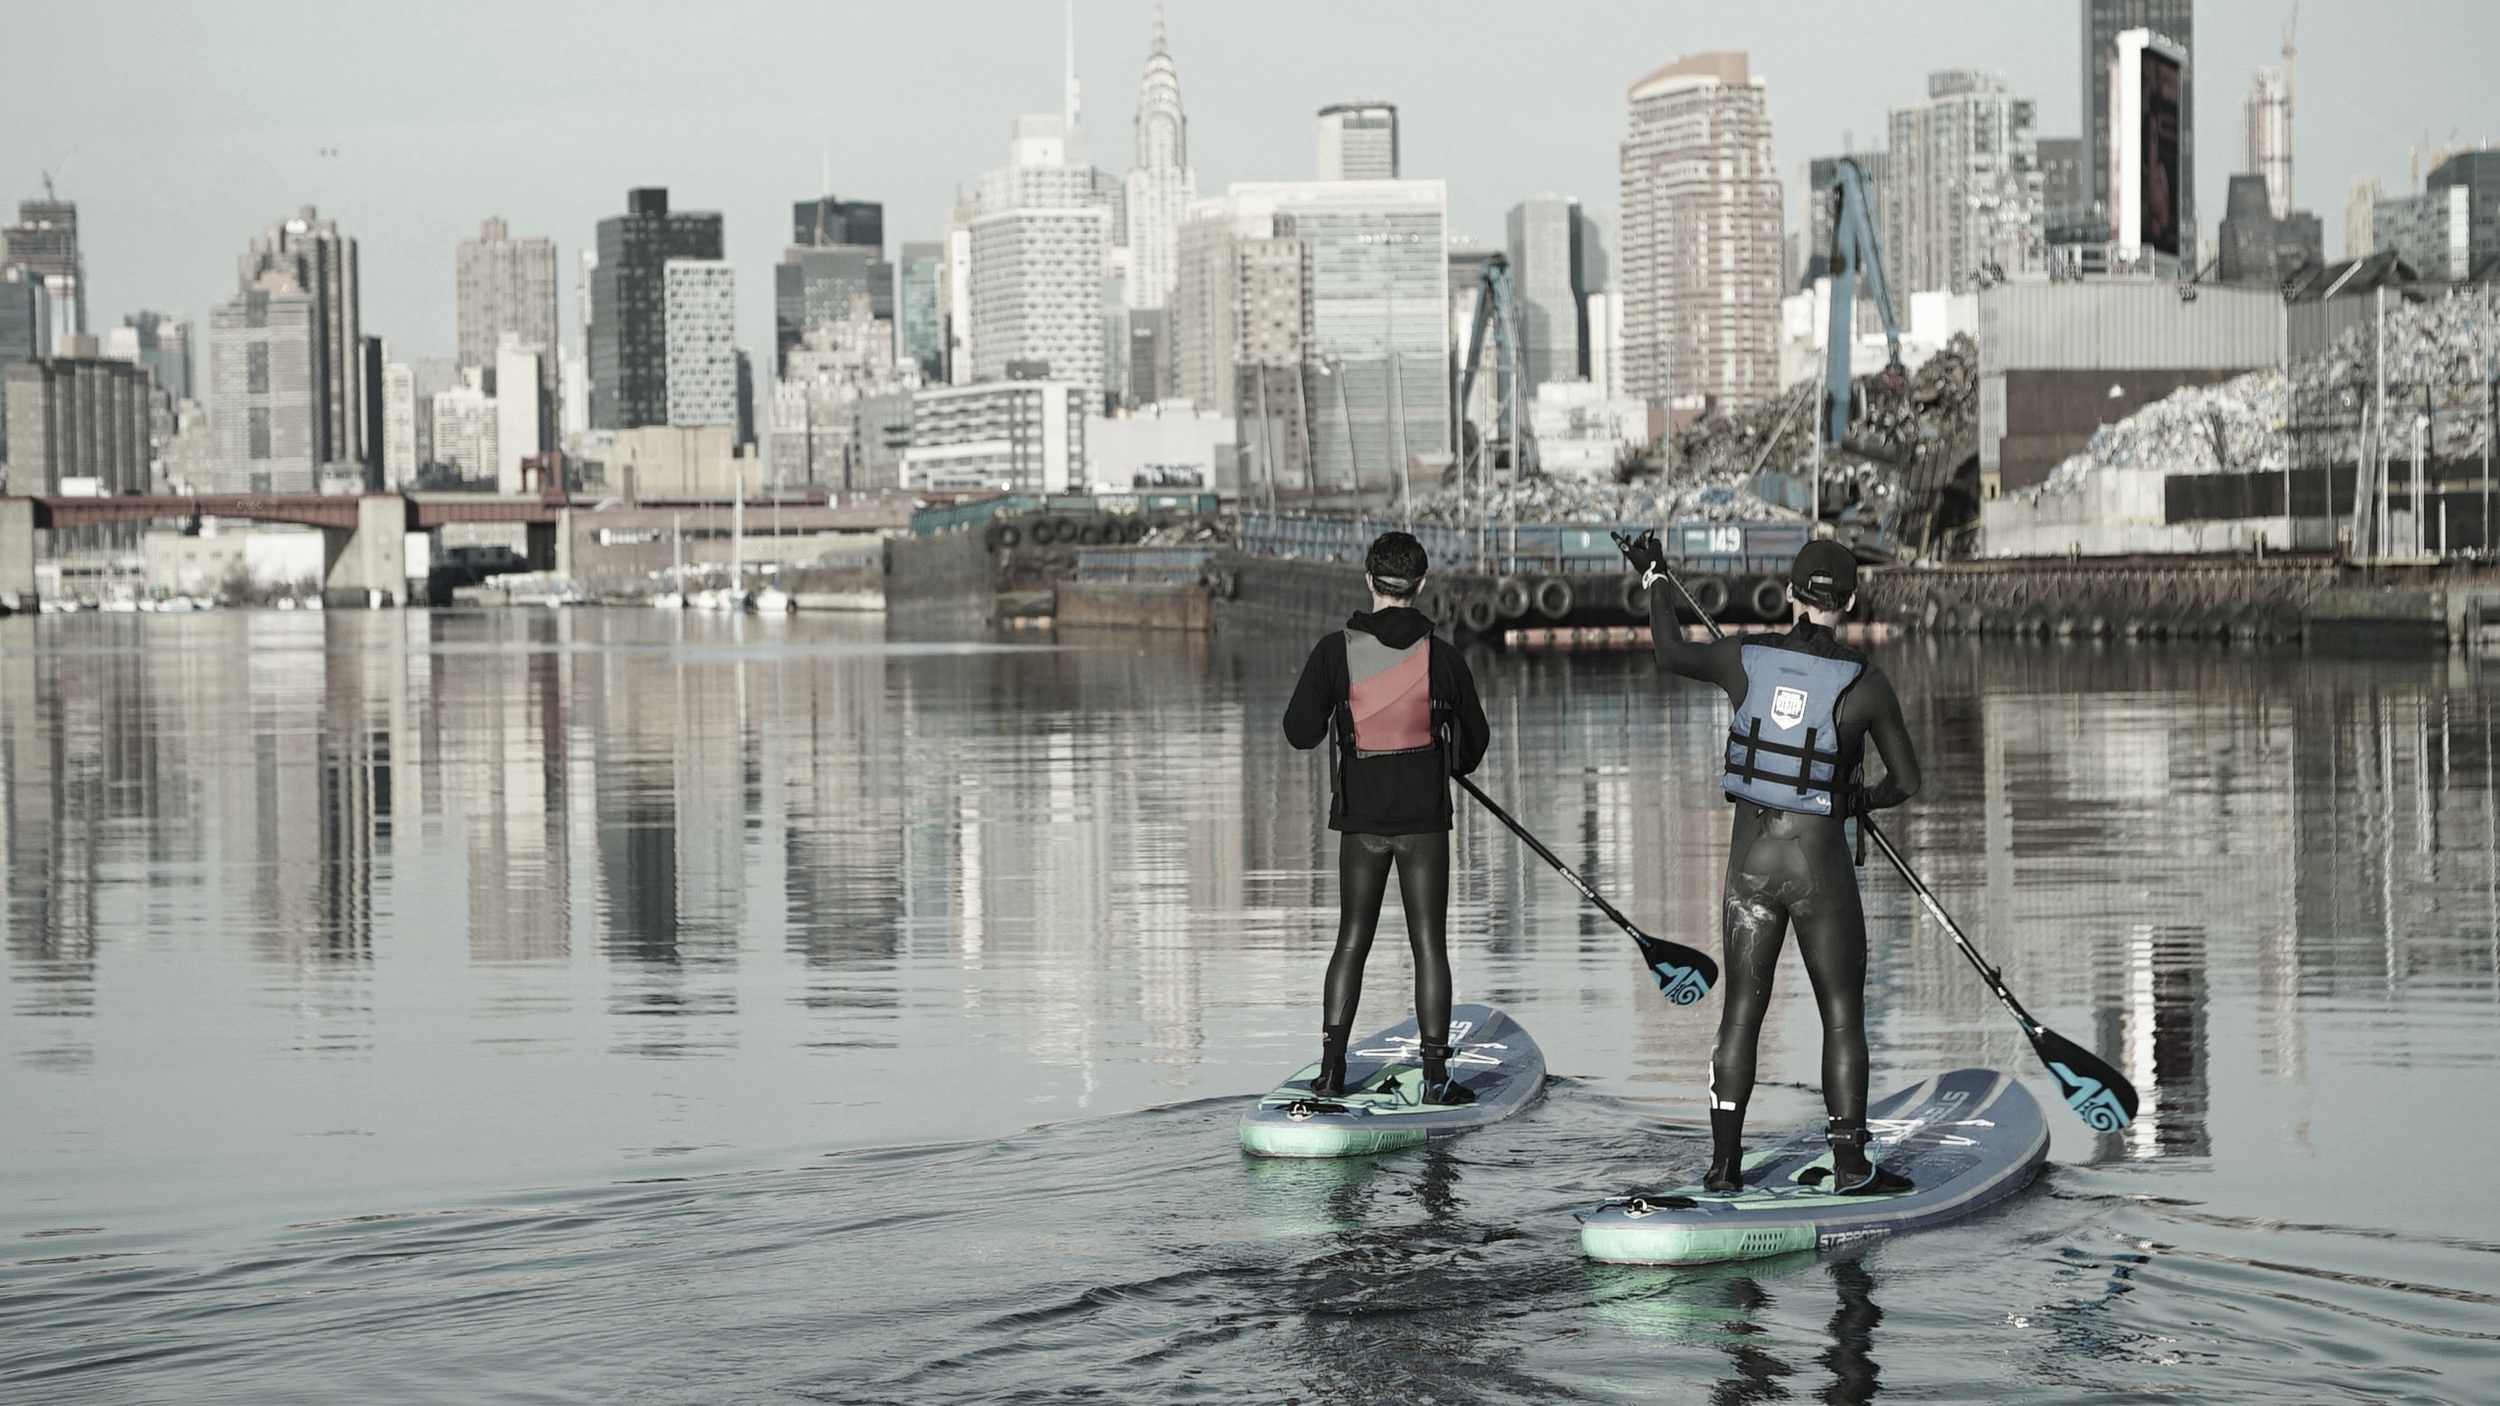 2Sam-and-Gary-Bencheghib-in-Newtown-Creek_12-02-17_Photo-by-Marco-Vitale.jpg